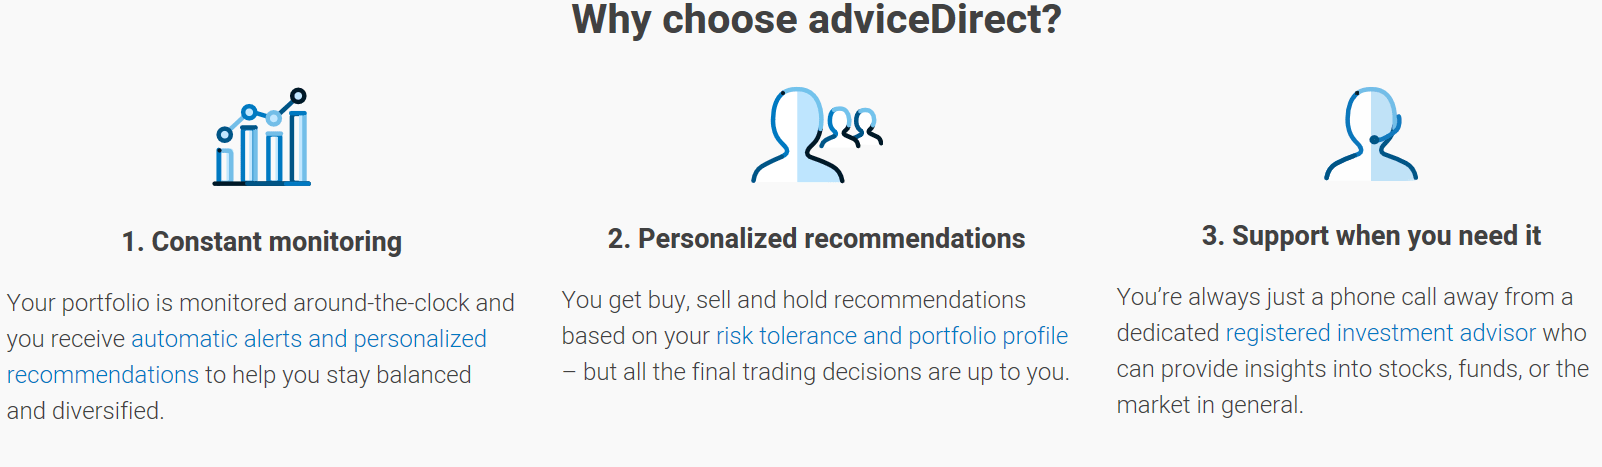 advice Direct Why